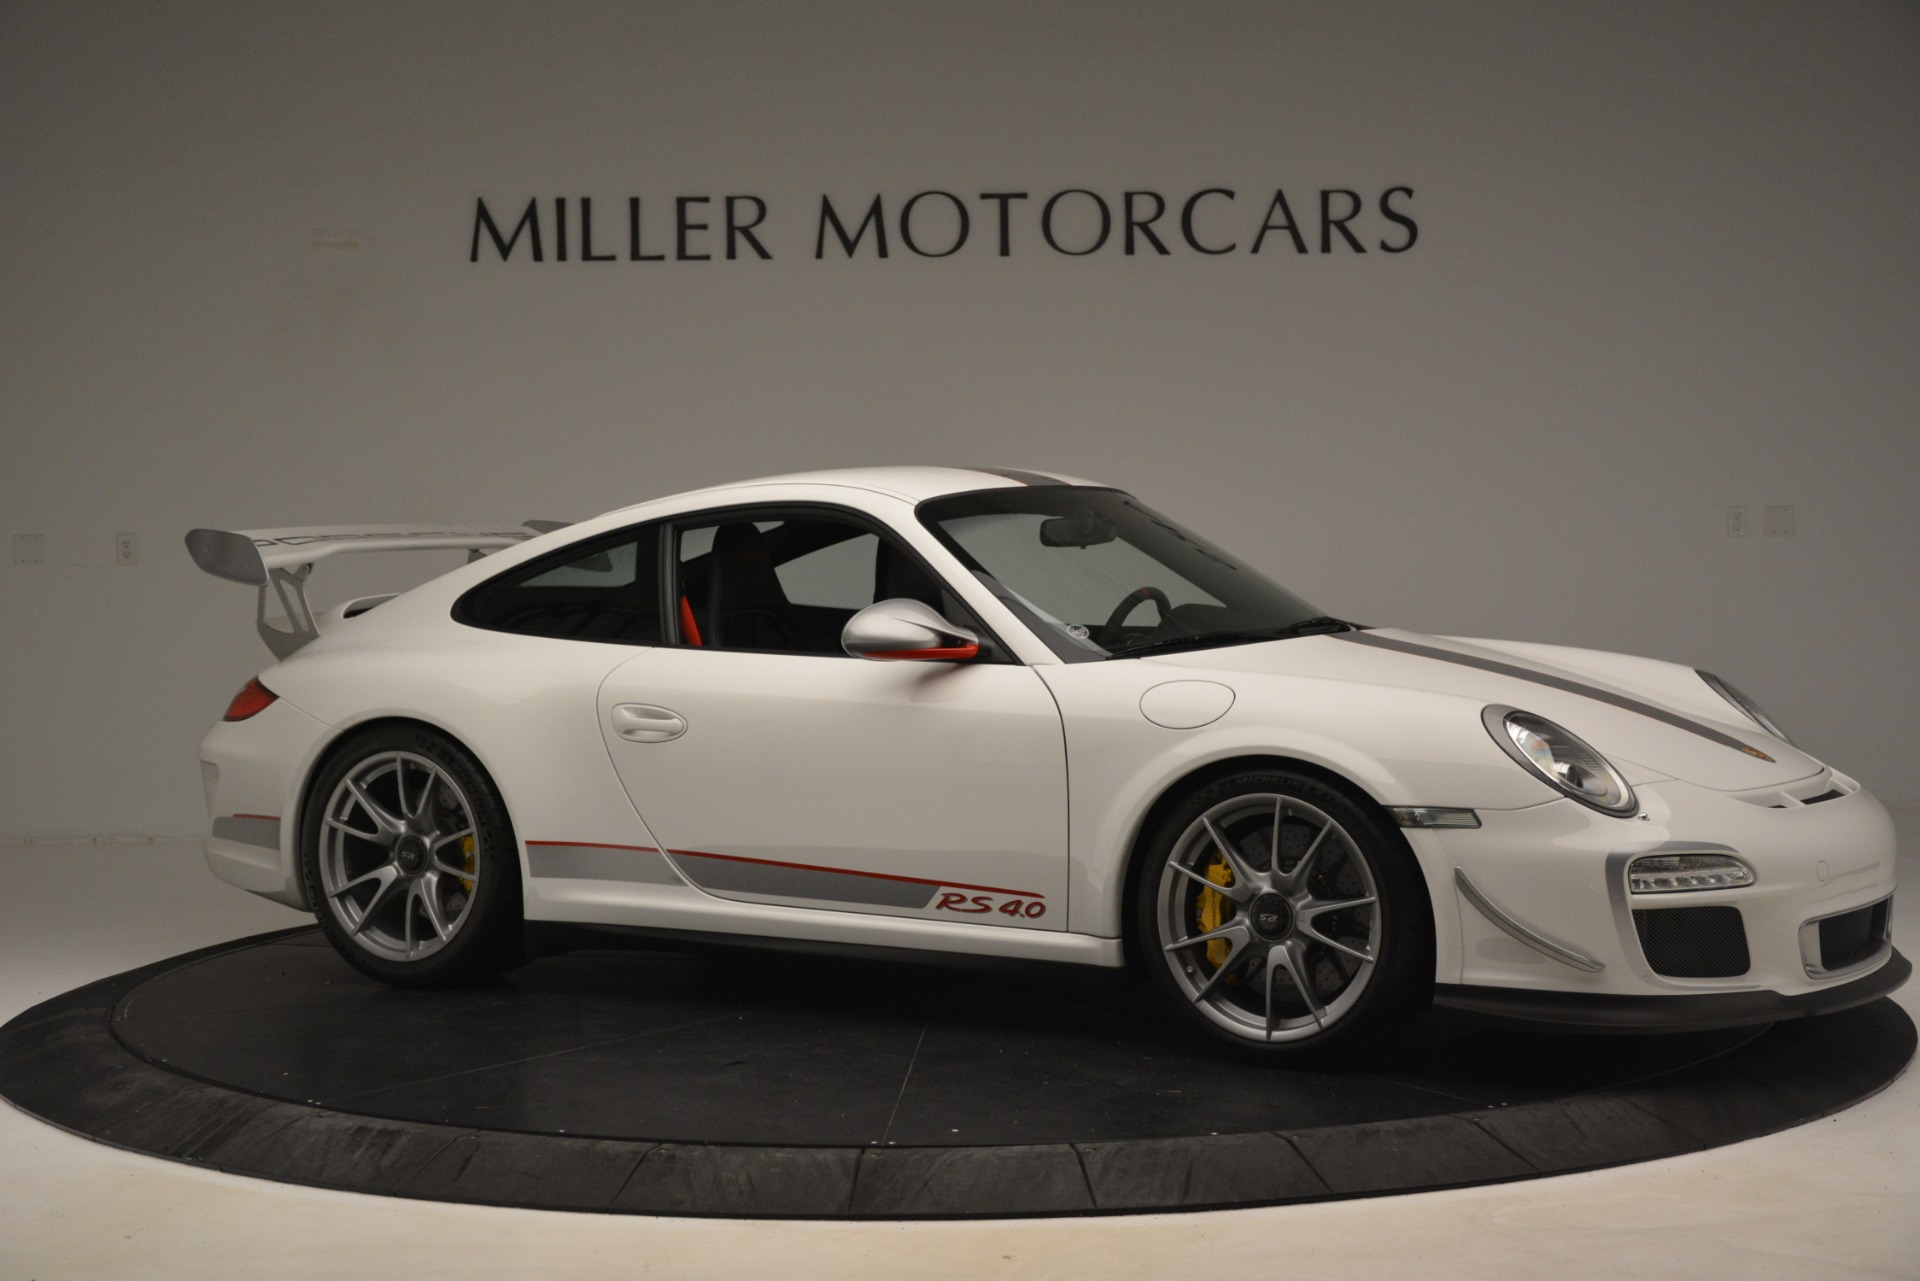 Used 2011 Porsche 911 GT3 RS 4.0 For Sale In Greenwich, CT 3188_p11